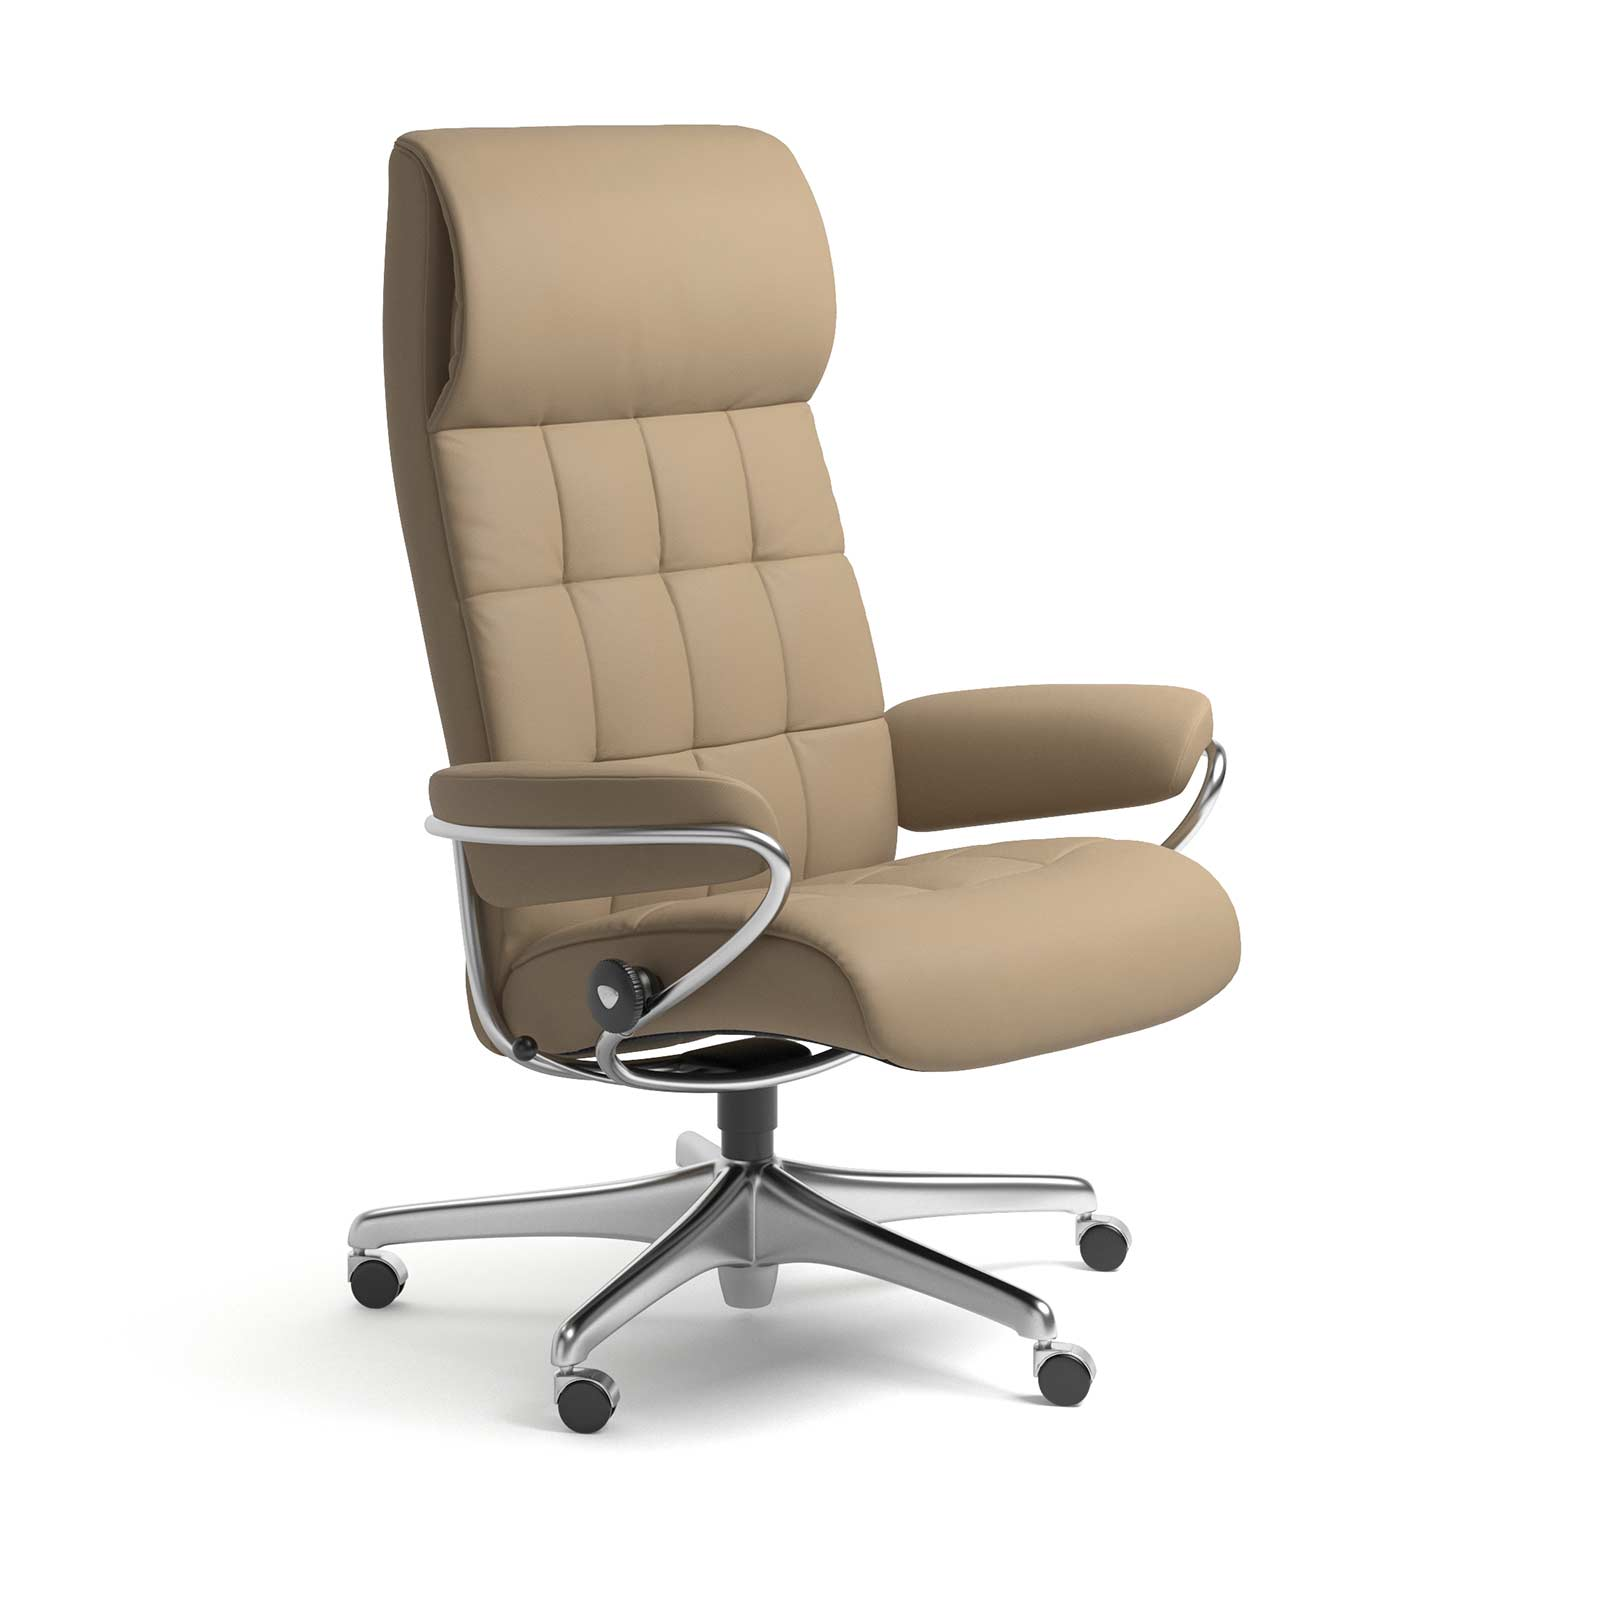 Stressless Sessel London Home Office Hohe Lehne Leder Paloma Funghi